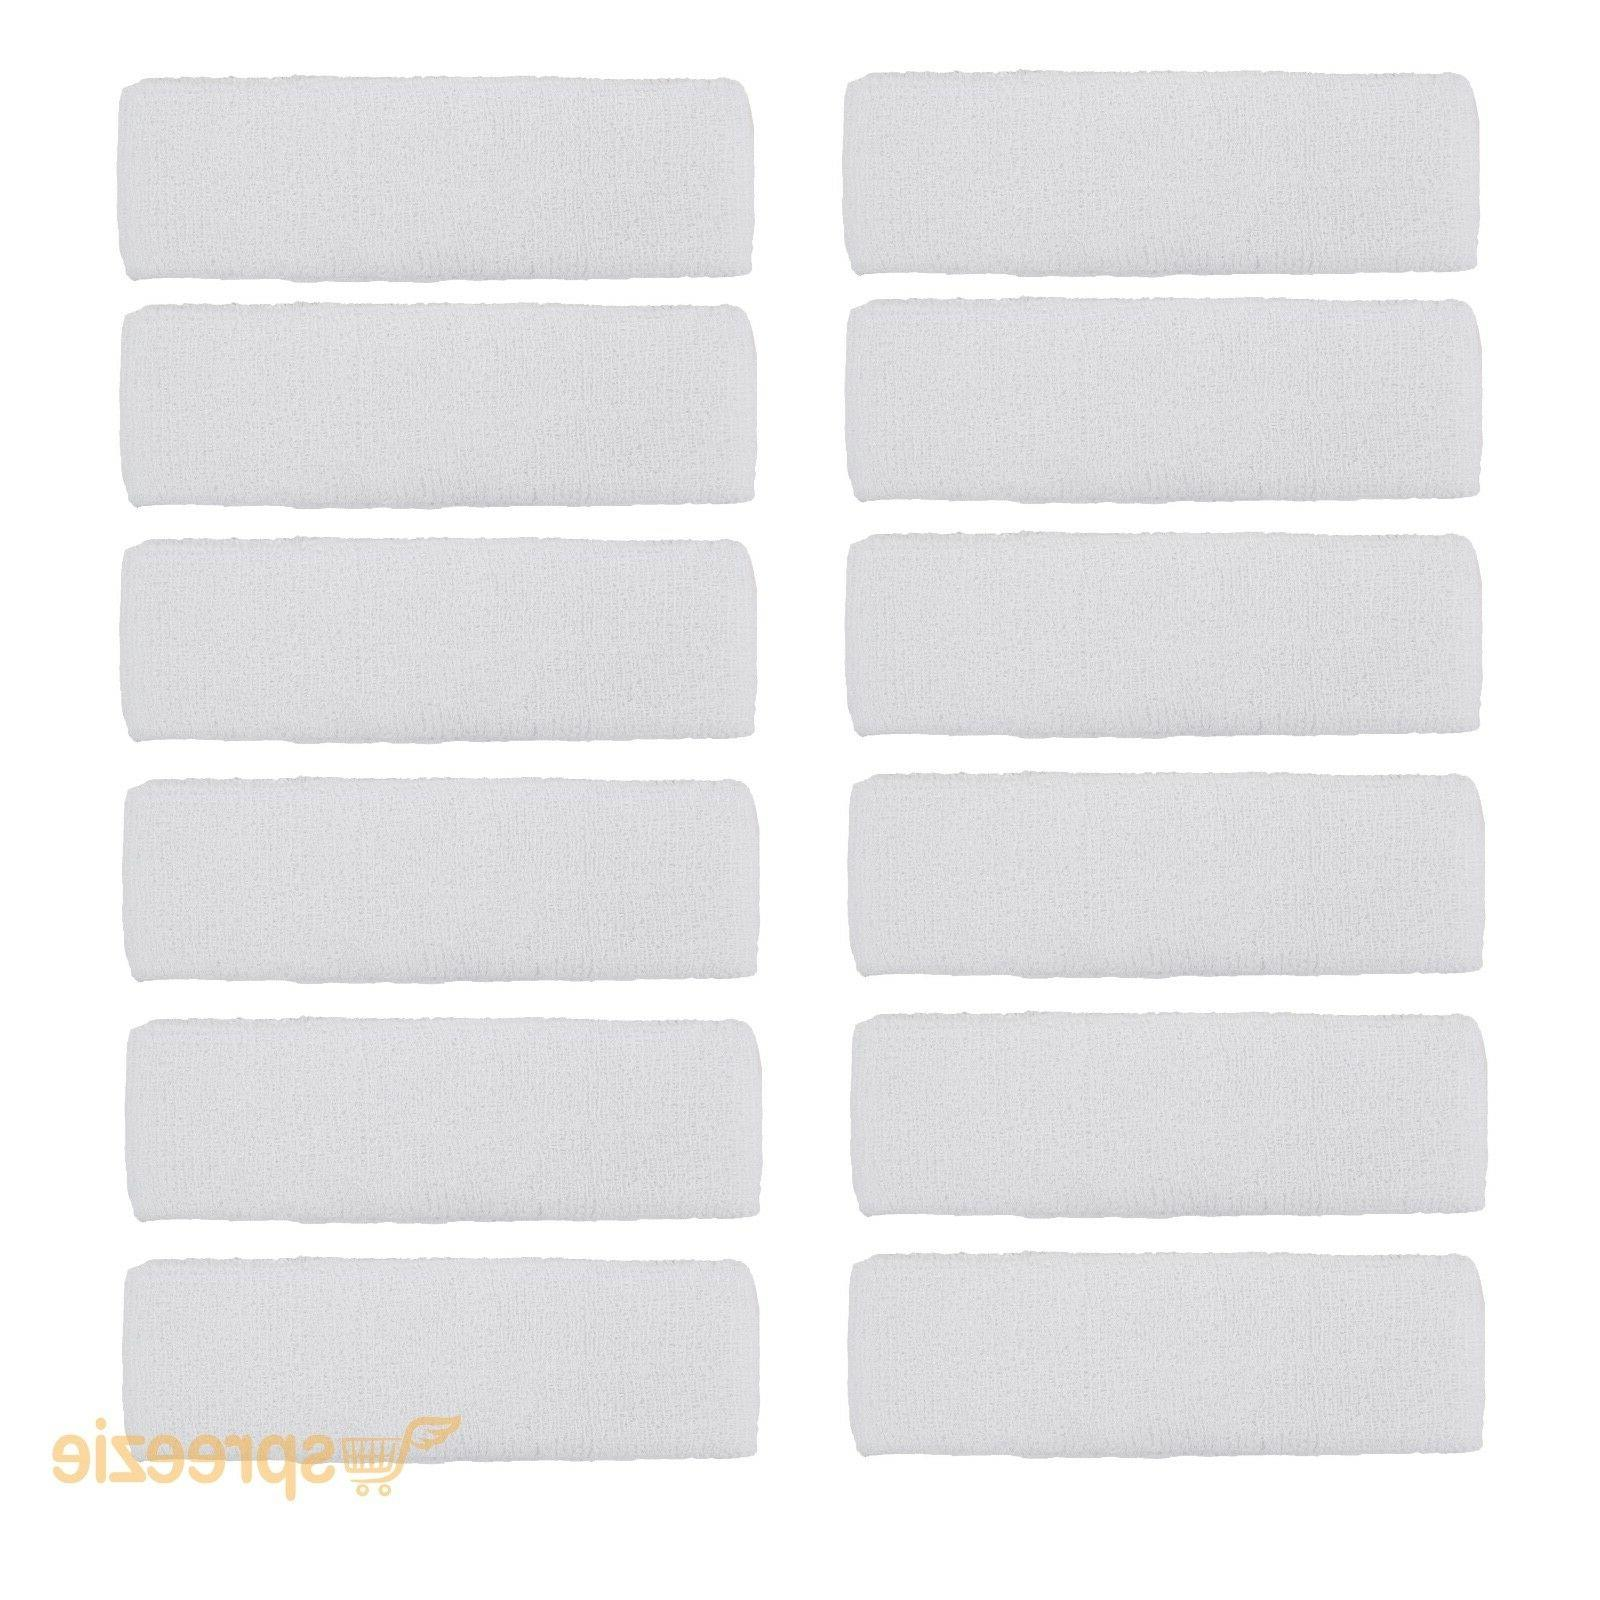 12 pack white sweatband terry cotton headband